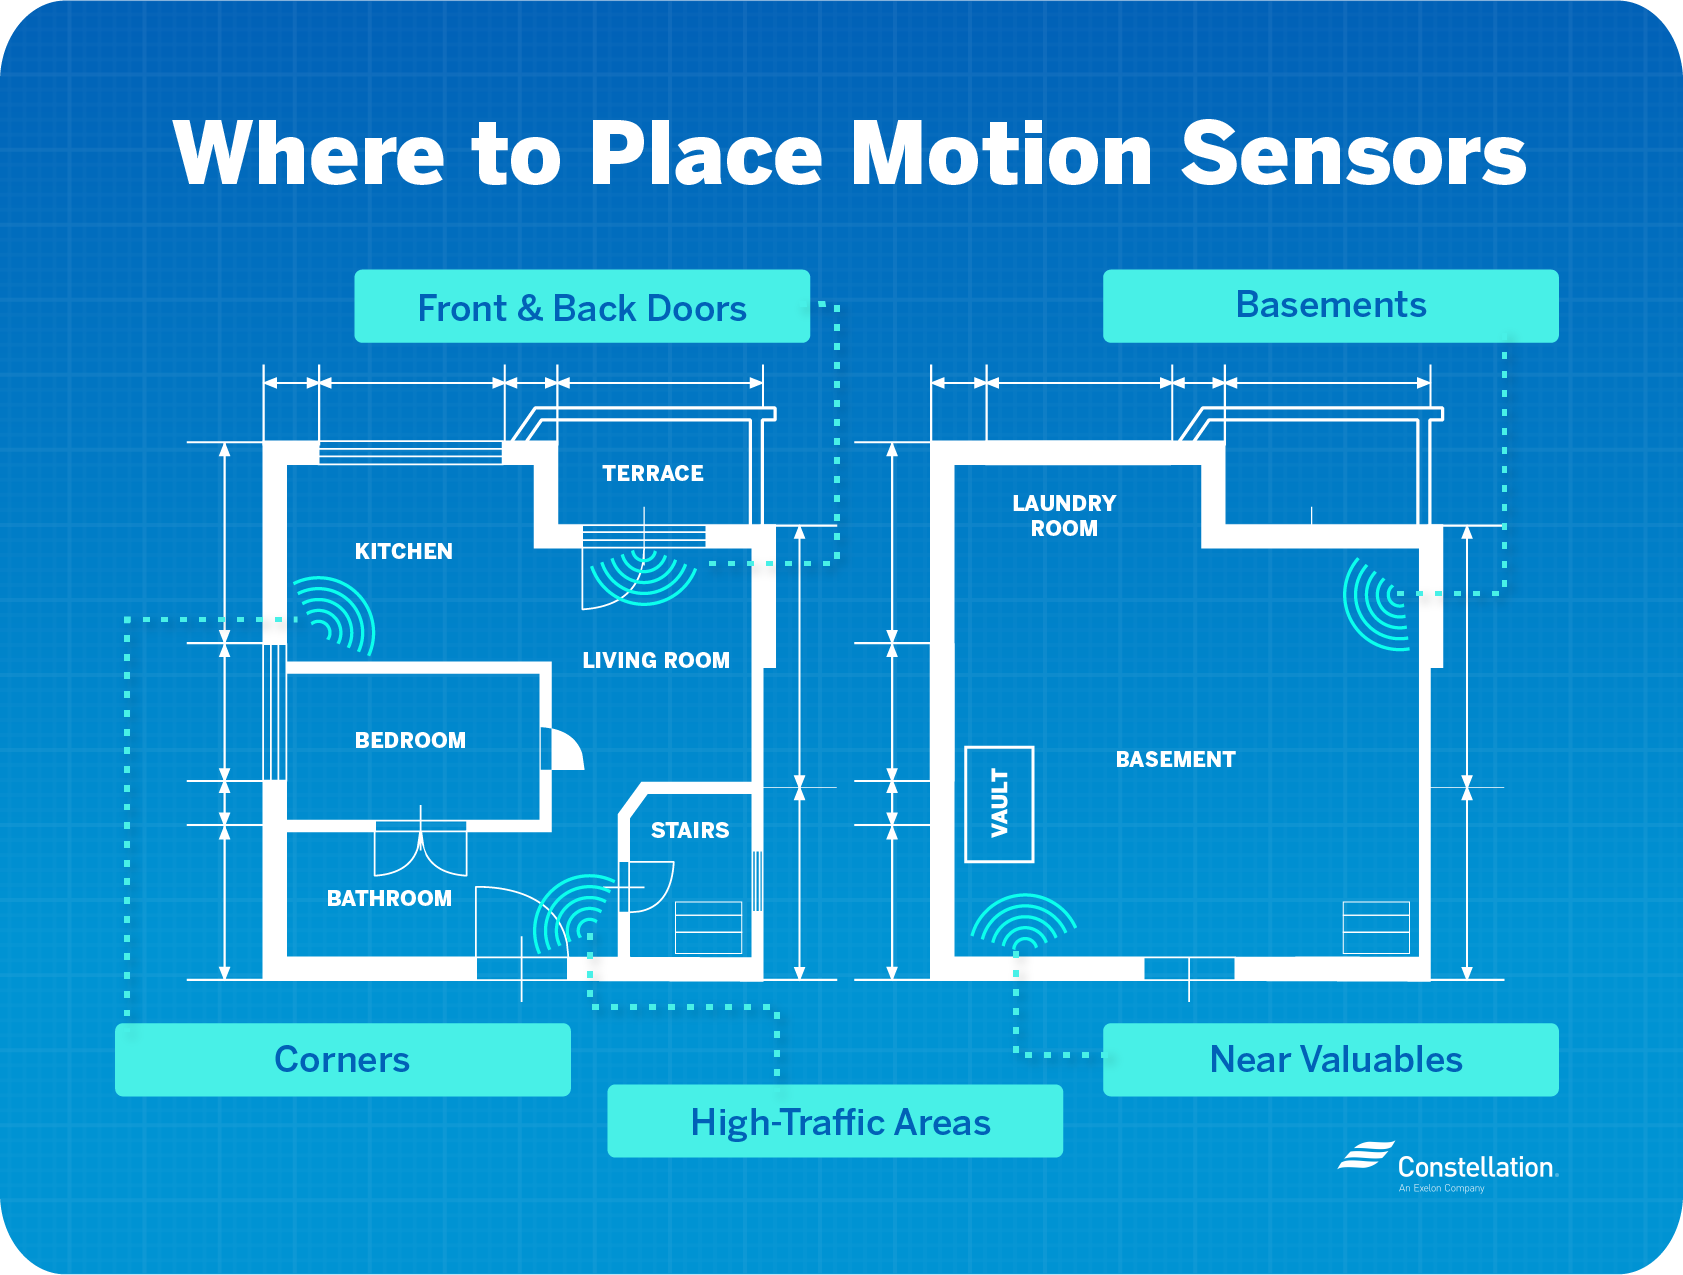 Where to place motion sensors